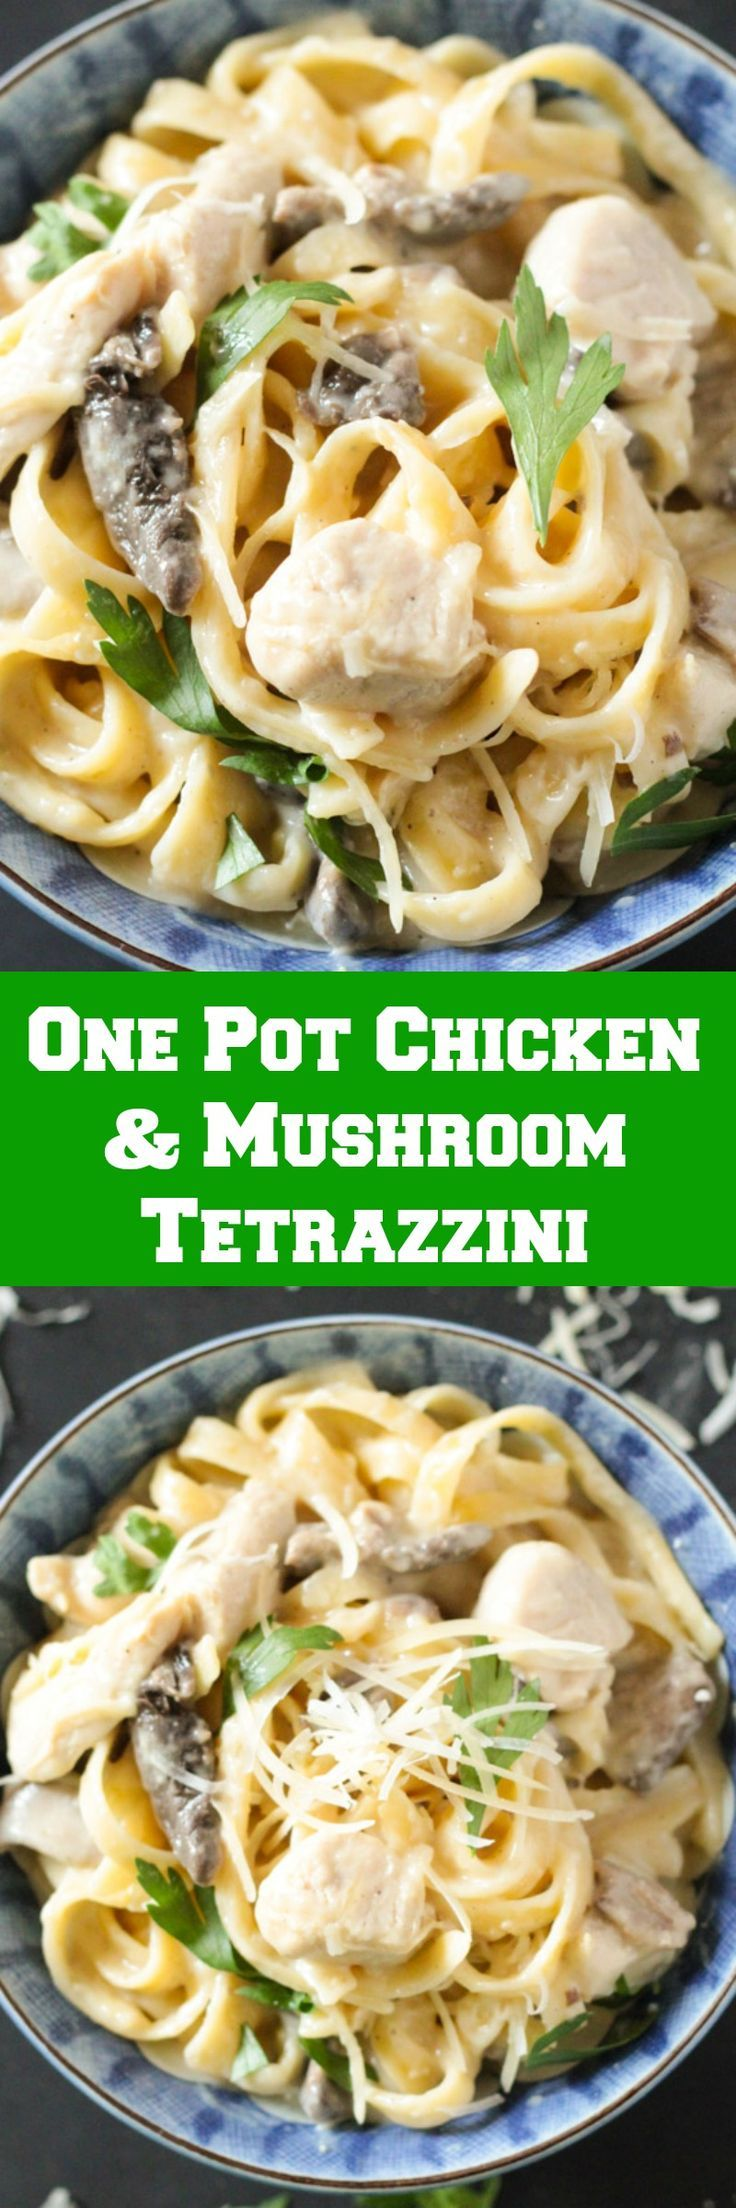 One Pot Chicken & Mushroom Linguine Tetrazzini